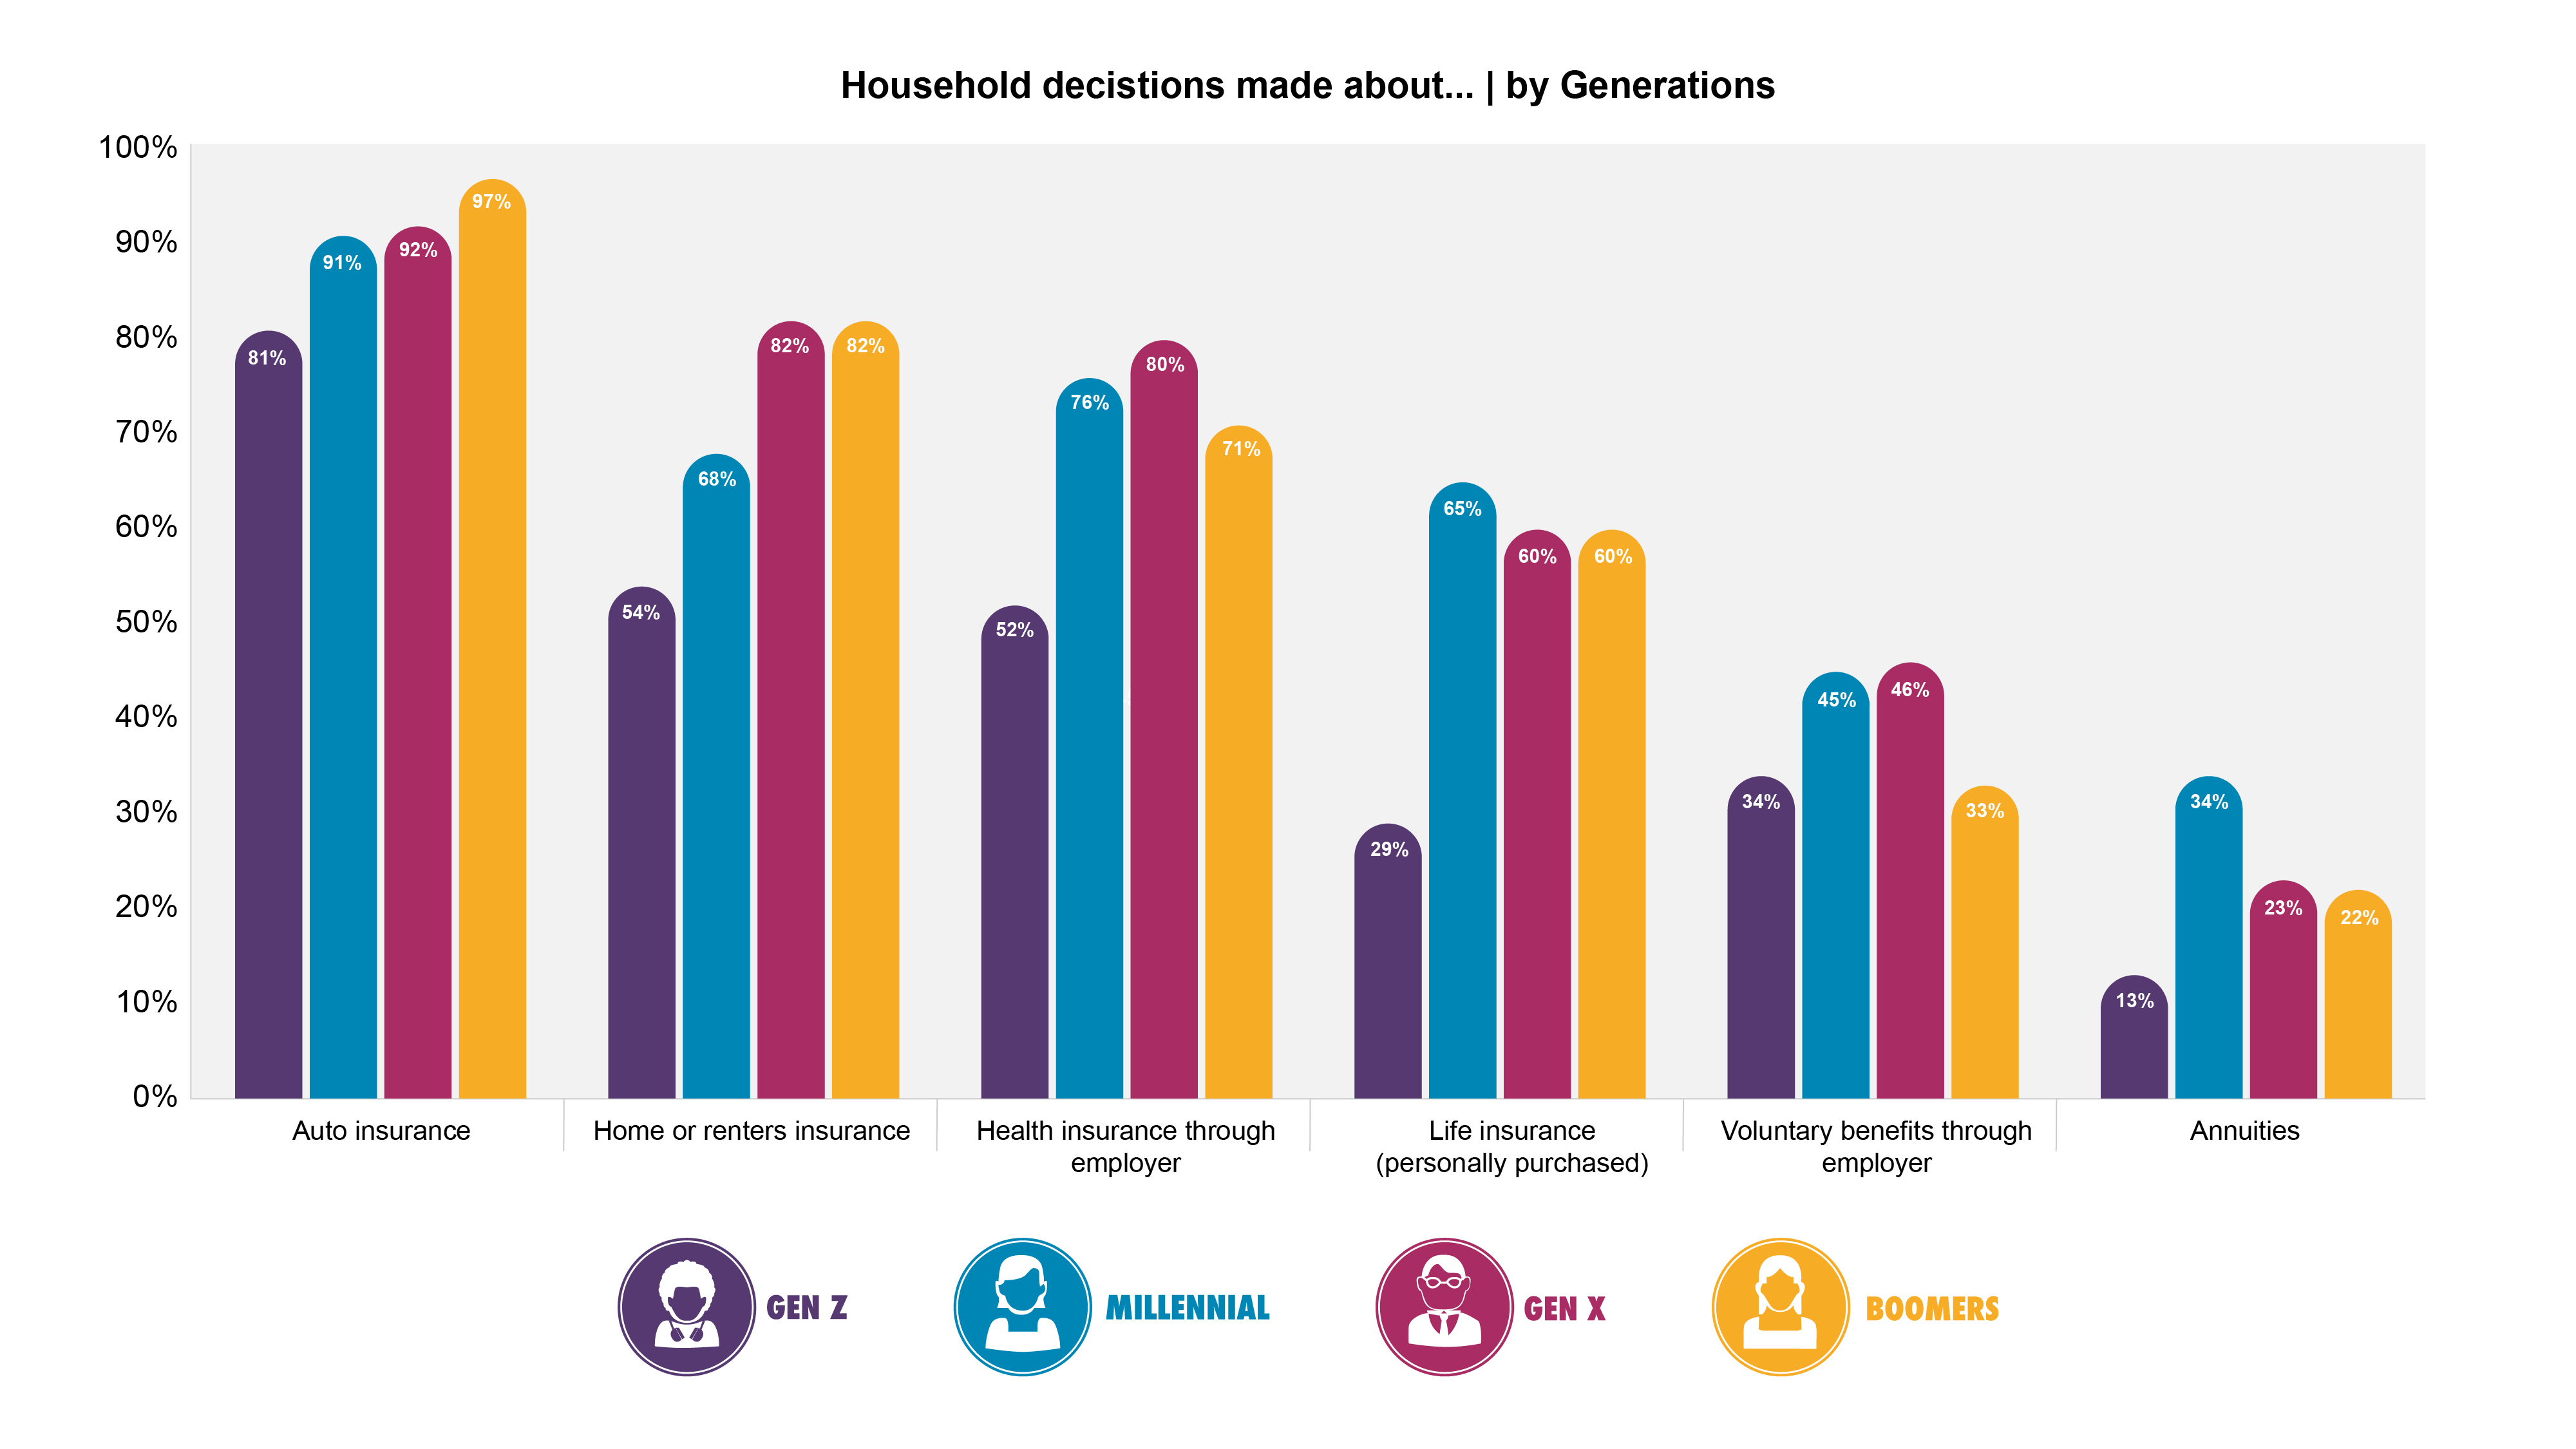 . </p> <h2><strong>  Current and future lifestyle </strong></h2> <p>  Who buys insurance? Majesco started her research with some elementary questions about purchasing insurance through generation. The big news is that millennials are equal to or higher than Gen X and Boomers in the ownership of all types of insurance coverage except home / tenants (see Figure 1). Given that housing loans require insurance coverage, this suggests a high rental level (without insurance) among this segment and a correspondingly high market and sales potential for tenants insurance. High rental rates are probably a long-lasting effect of the financial crisis's impact on Millennial's or the university's loan receivables. The recession is also a likely driver of Millennial's high ownership of individual life insurance, annuity, and investment, reflecting concern for economic well-being and protection. Gen Z's lower ownership in 5 of the 6 types of insurance probably indicates that many are subject to parental policies and plans for convenience or cost reasons. </p><div><script async src=